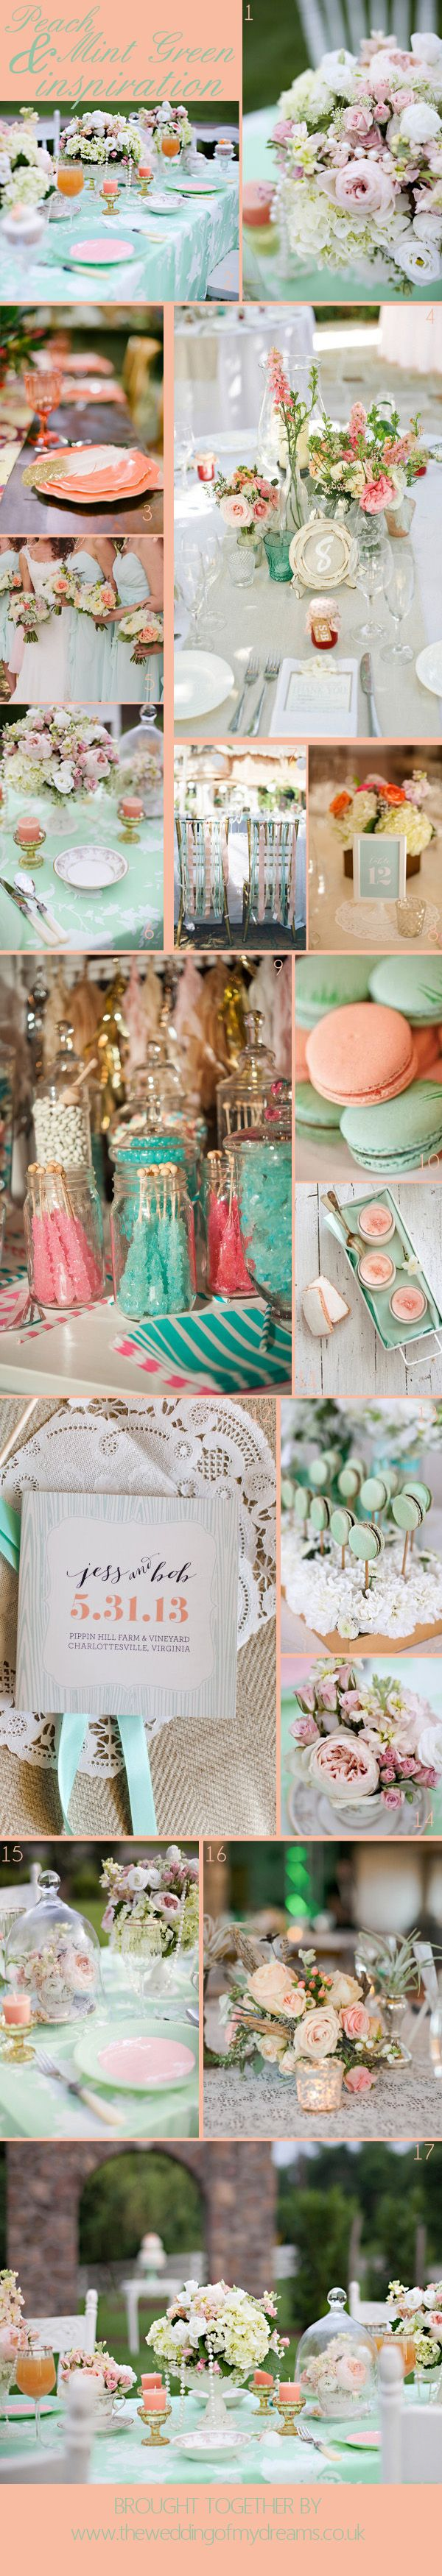 MINT GREEN AND PEACH WEDDING INSPIRATION